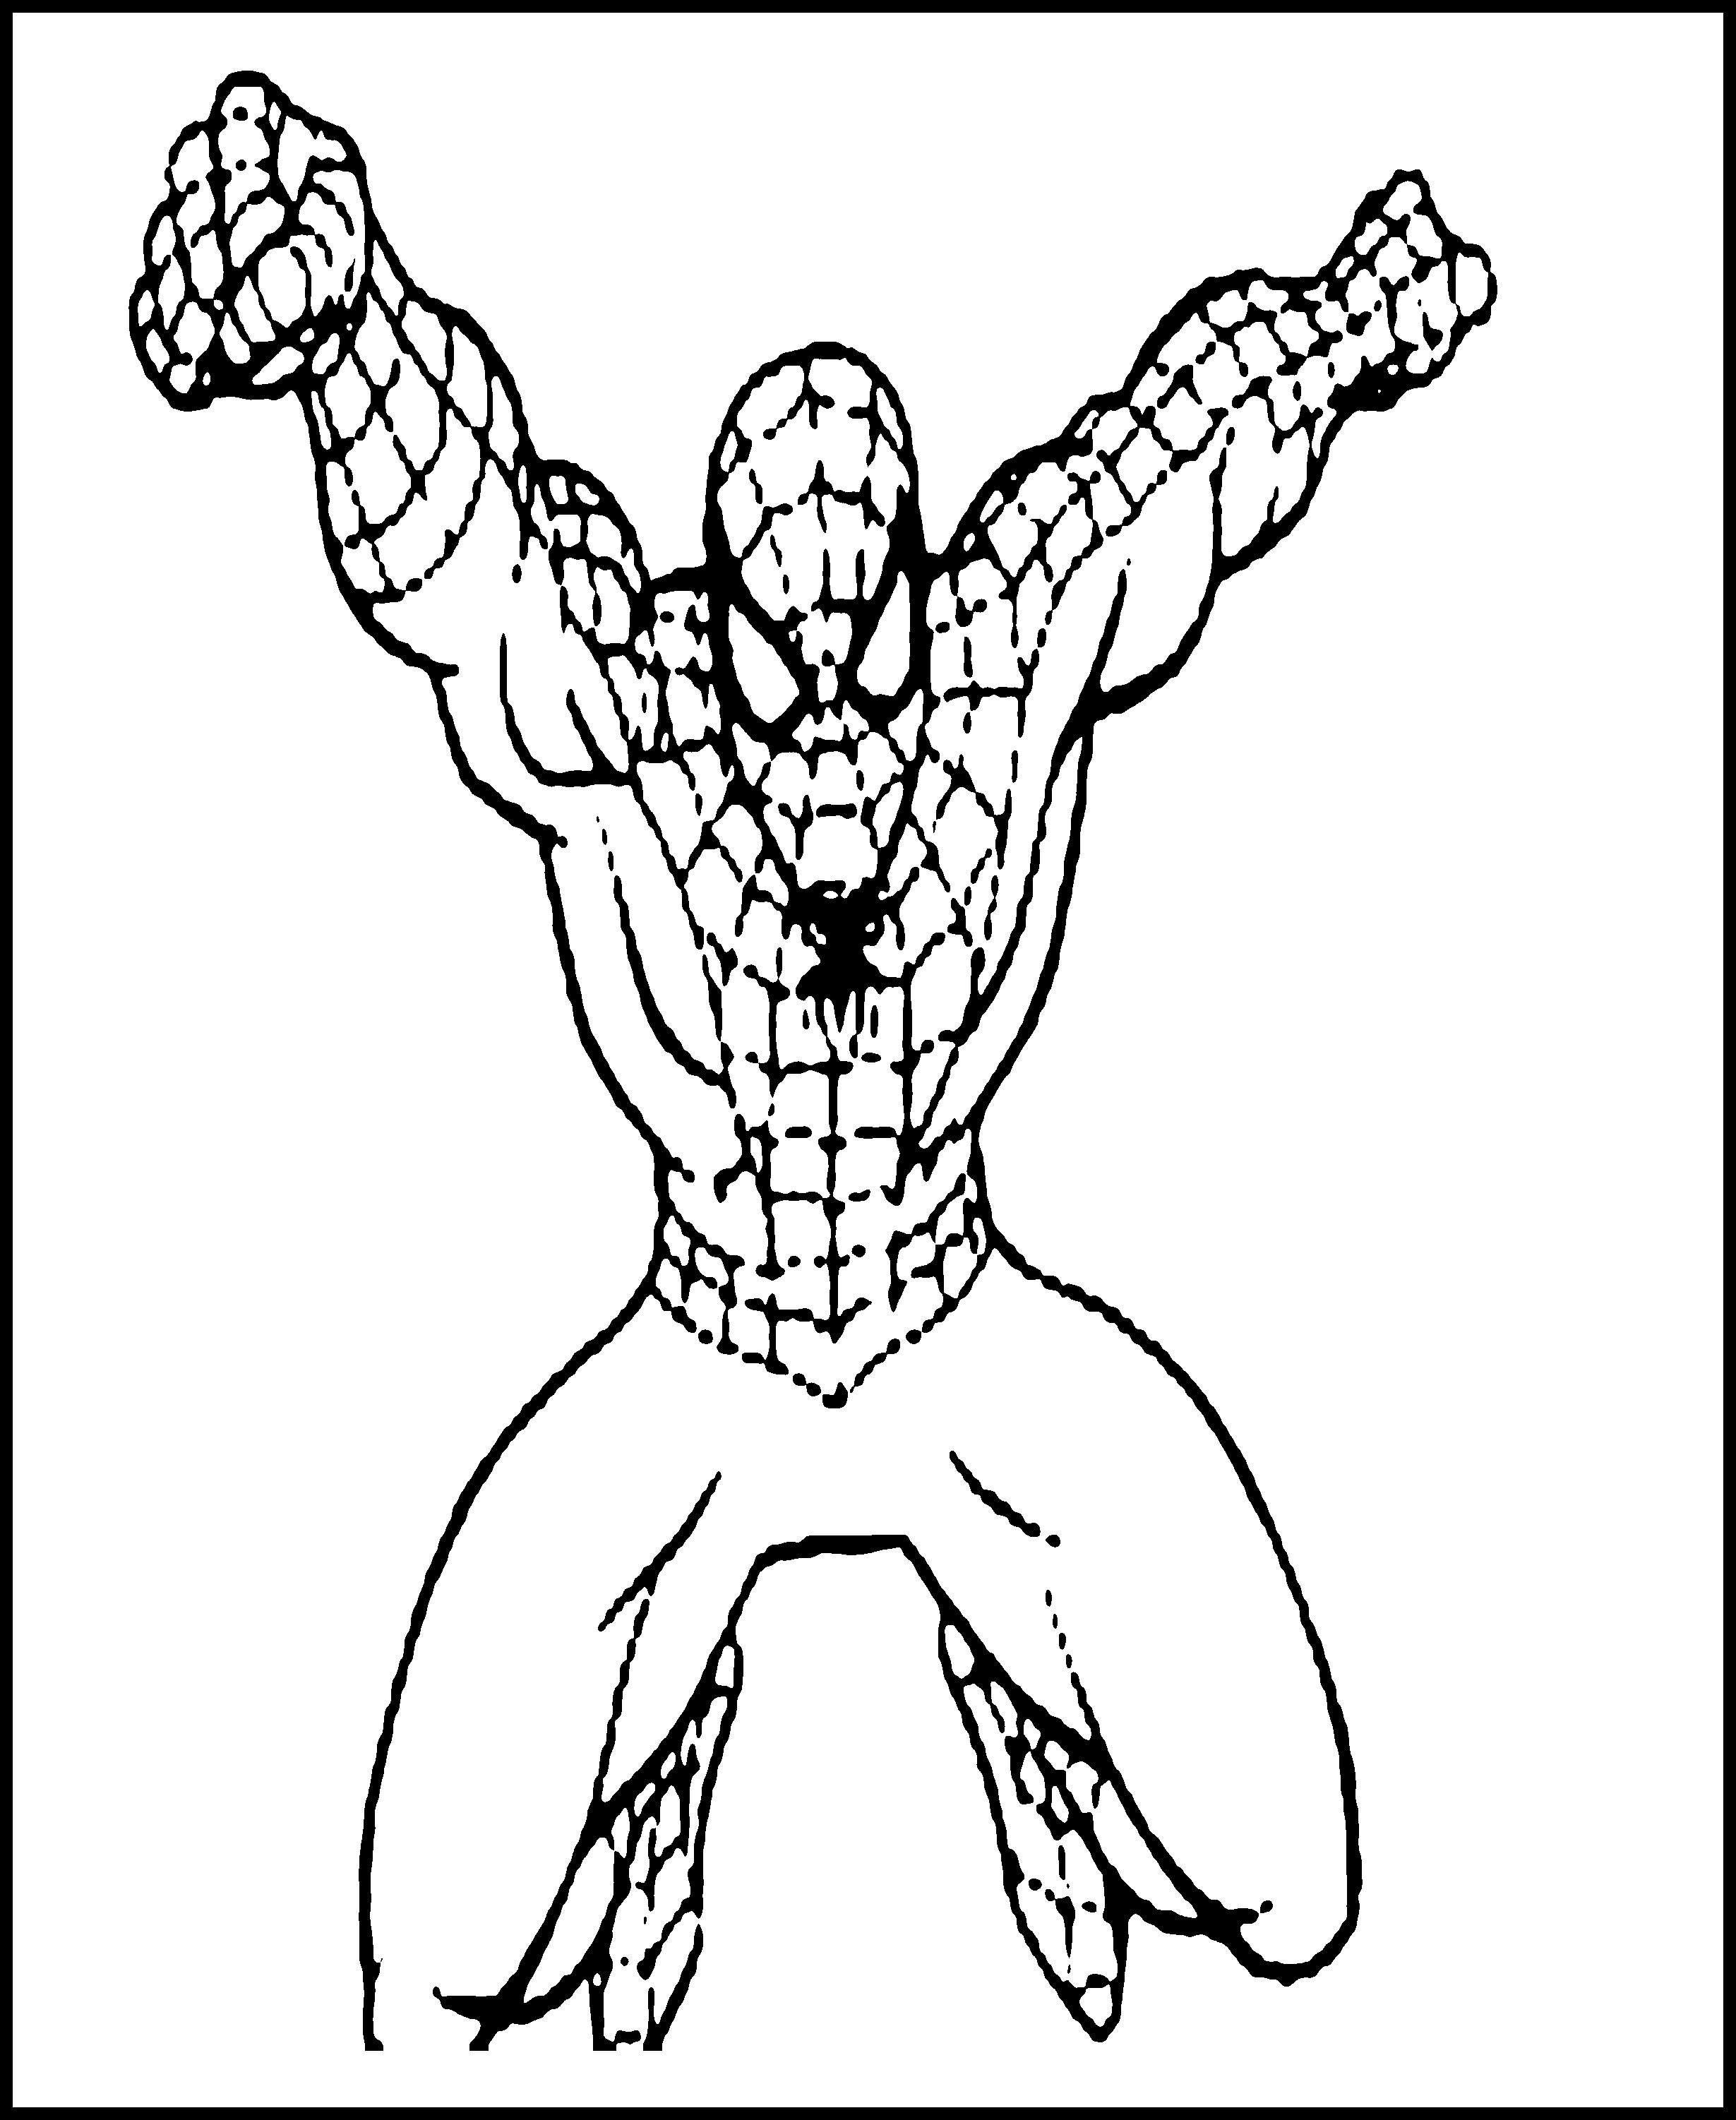 Printable Spiderman Coloring Pages at GetDrawings | Free ...